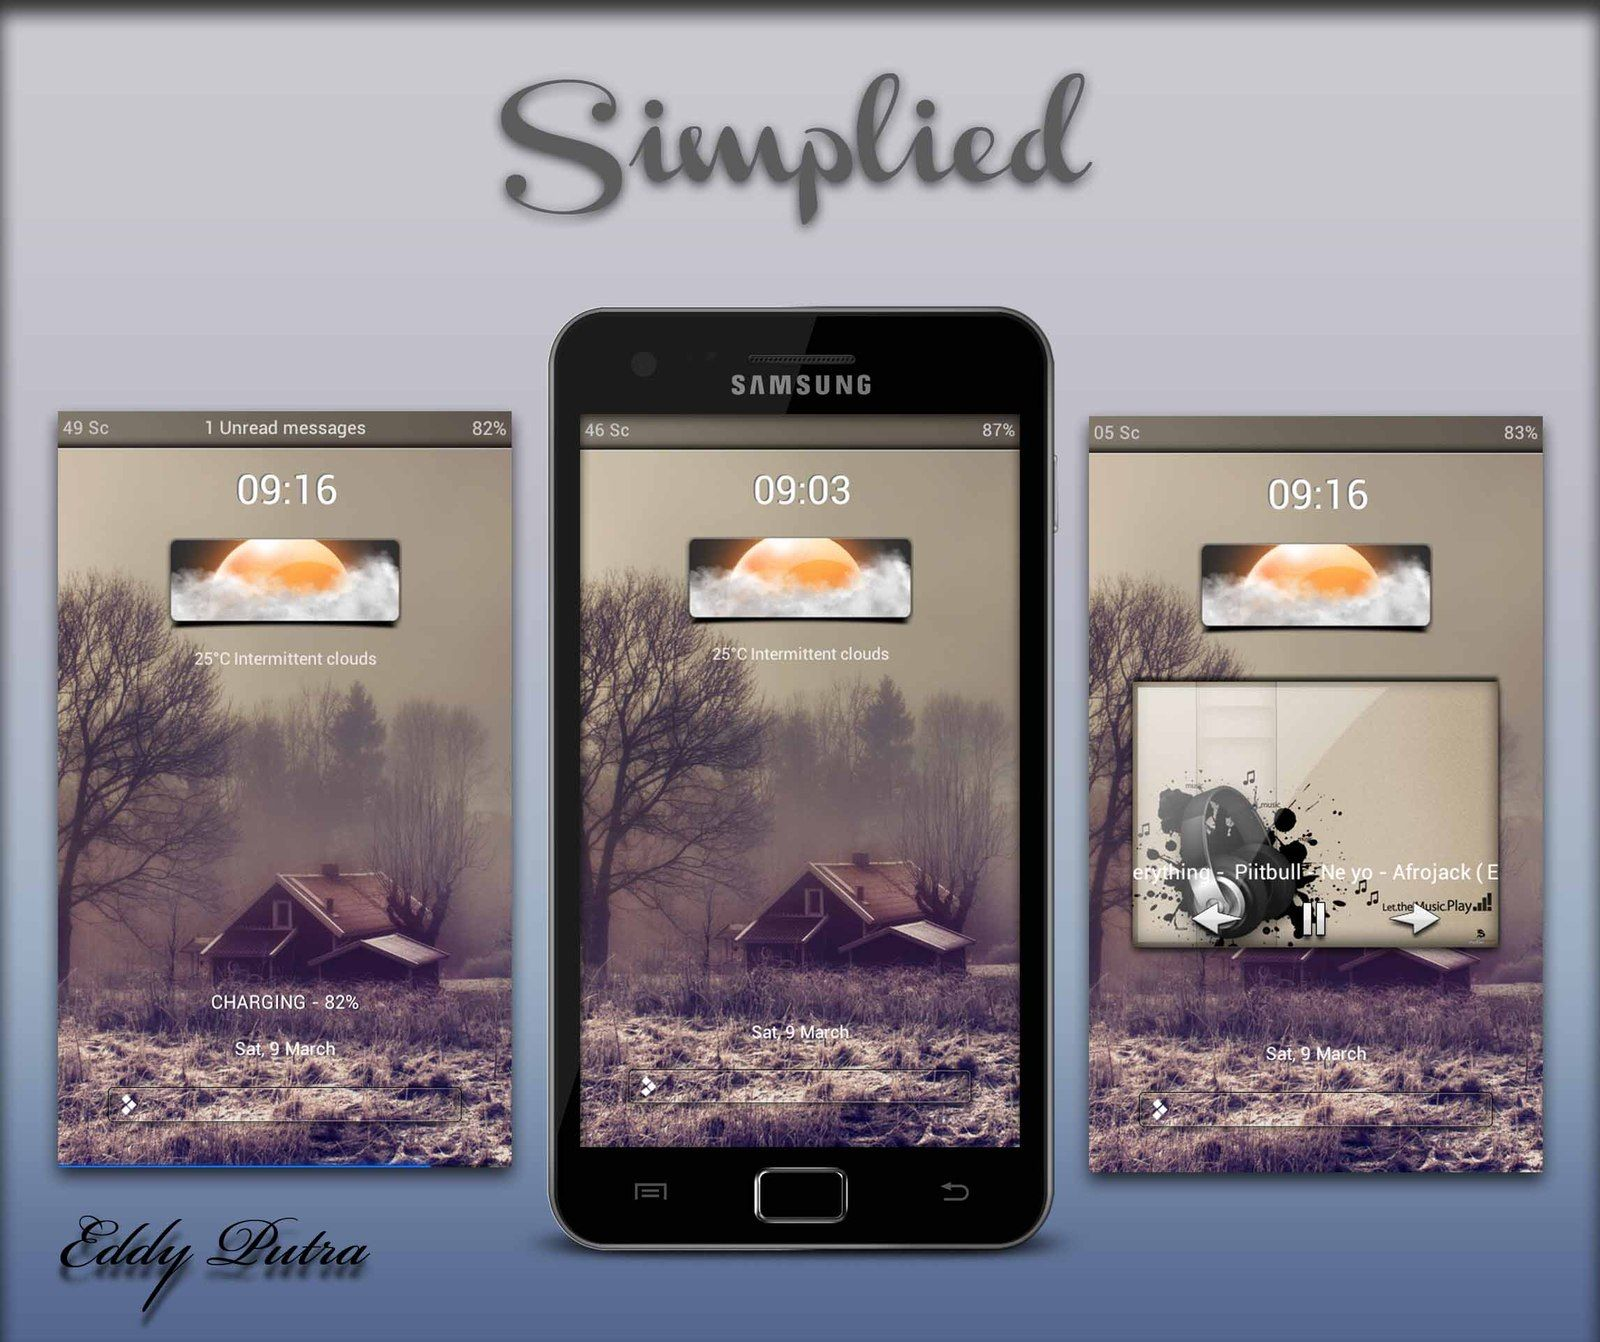 xda-developers - View Single Post - [MIUI LS THEMES] New